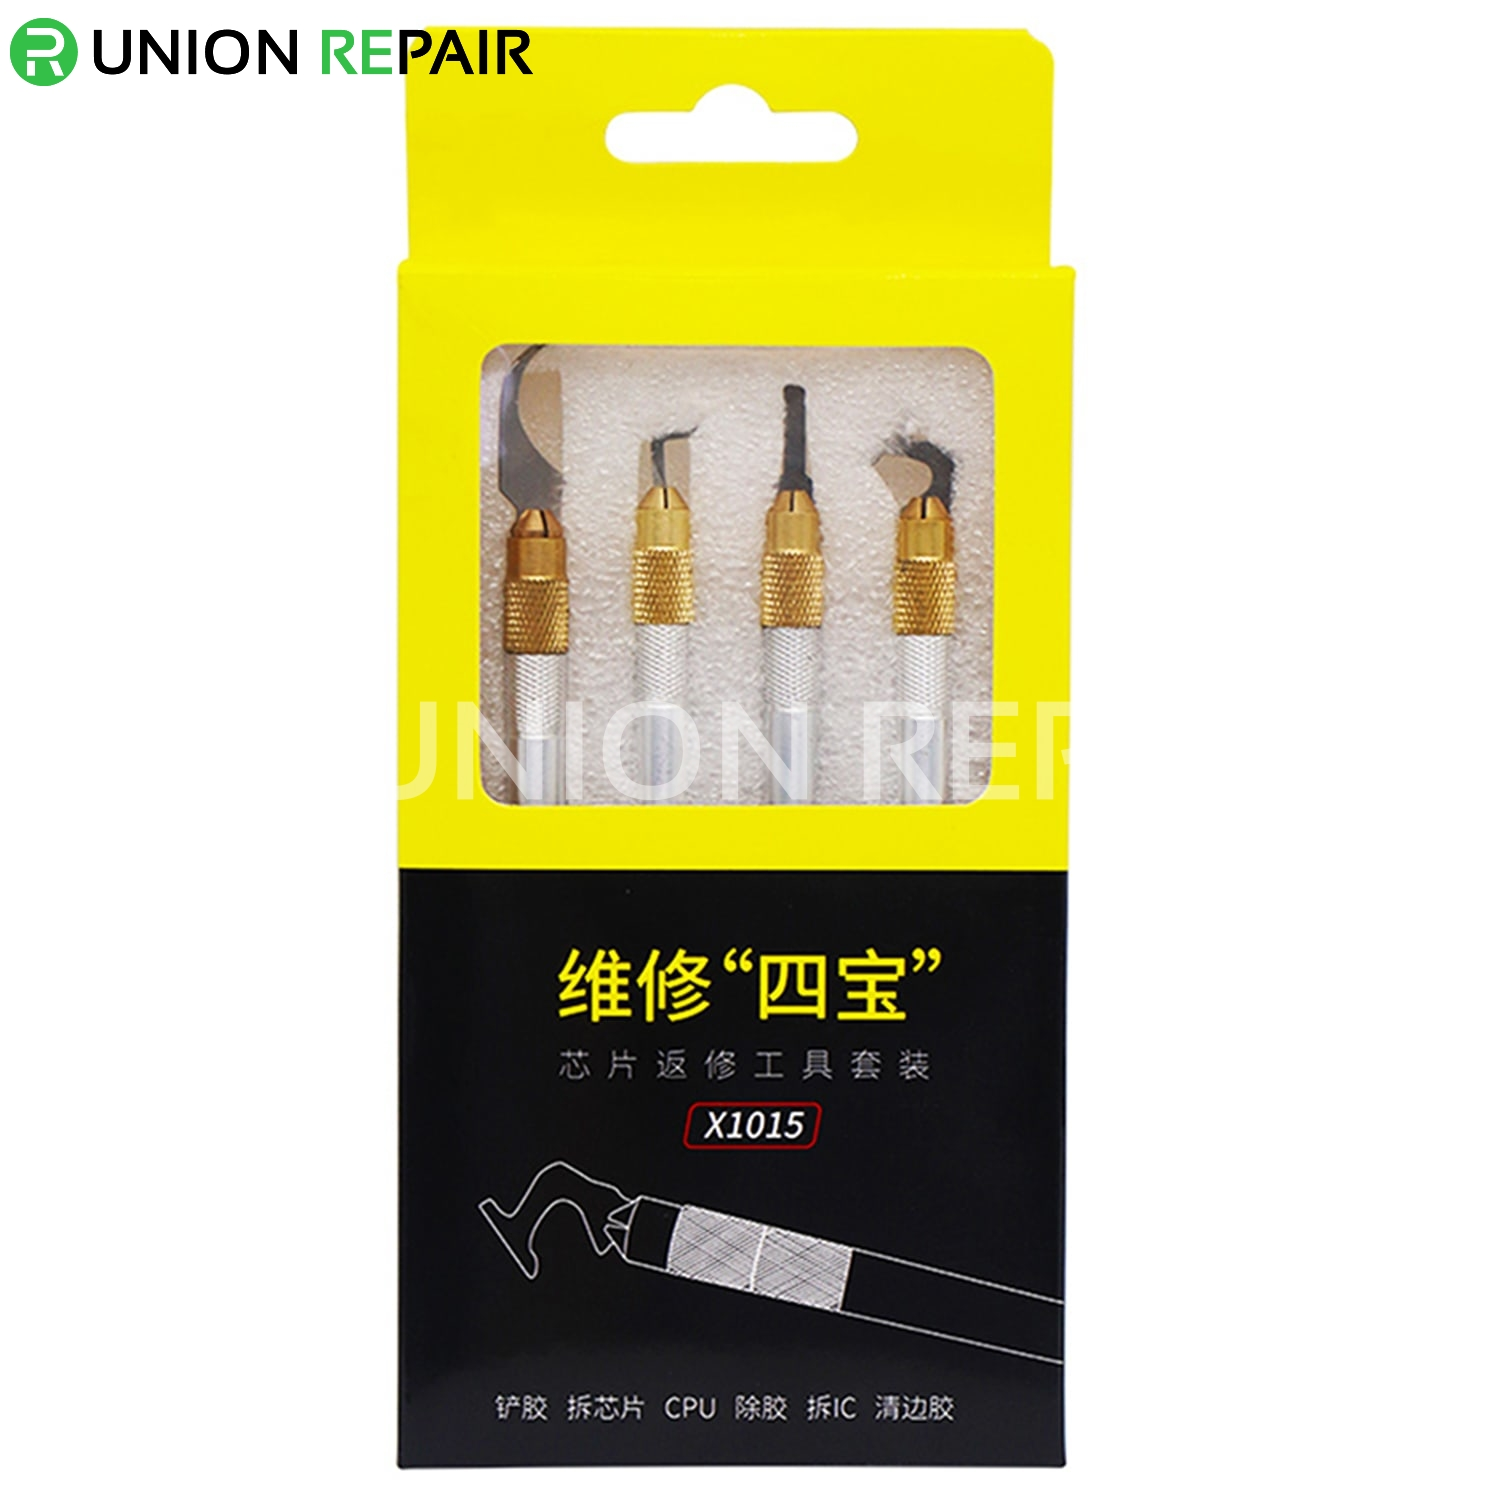 X1015 Chip Edge Scraping Knife Tool